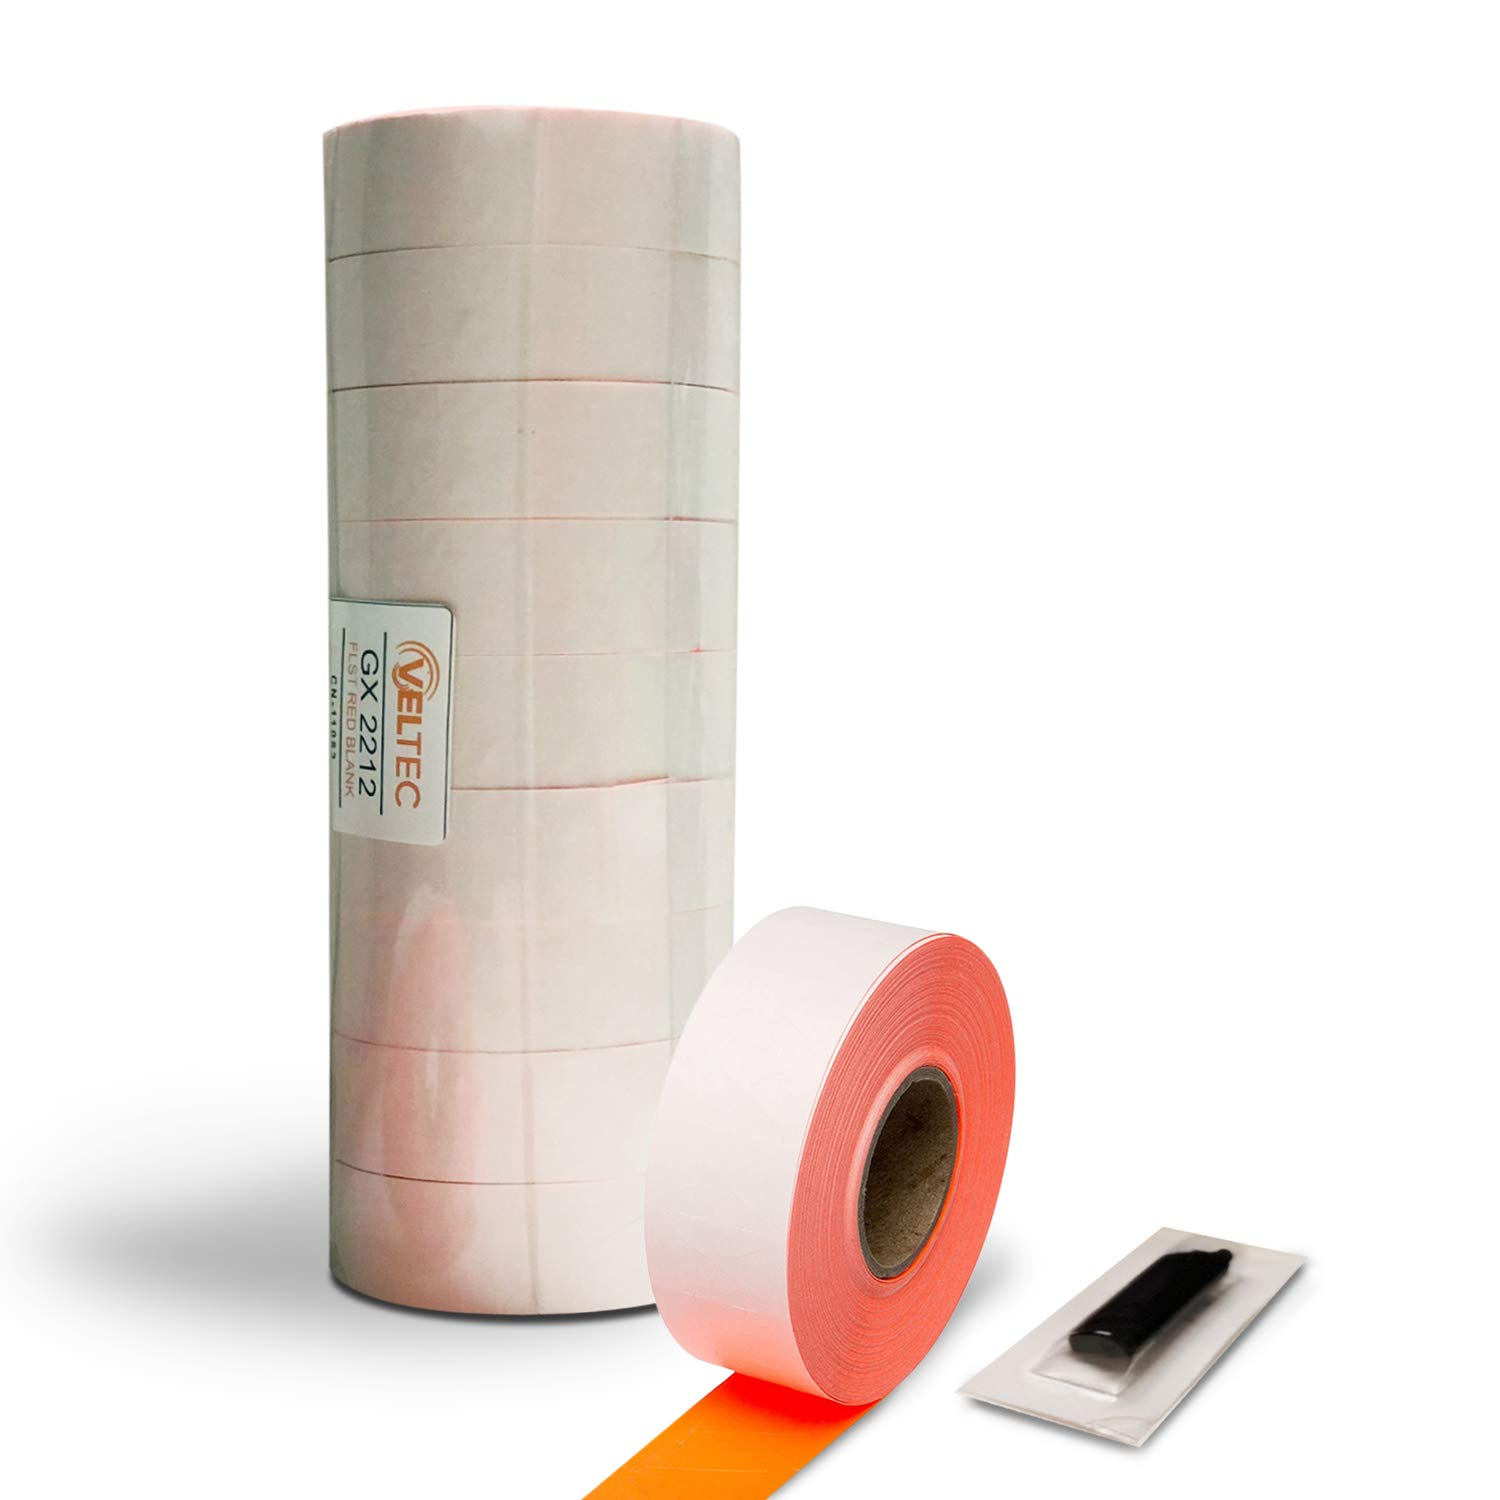 Veltec 2212 Fluorescent Red Pricing Labels for Garvey and Contact 22-6, 22-7, 22-8 Price Gun/Labelers, Free Ink Roller – 9 Rolls, 11,000 Labels with Security Slits